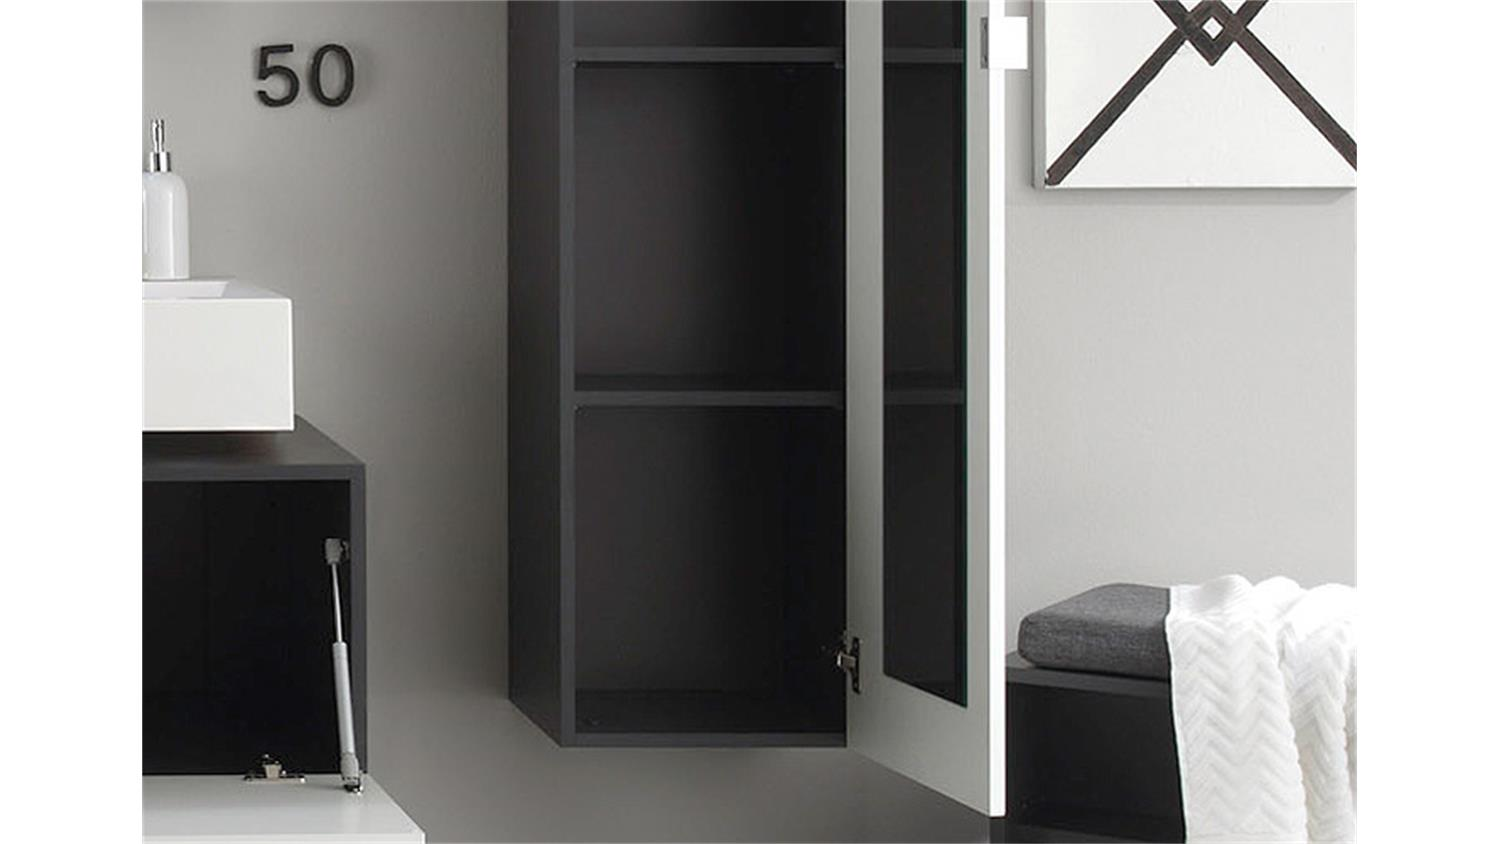 hochschrank beach badm bel wei hochglanz tiefzieh grau. Black Bedroom Furniture Sets. Home Design Ideas